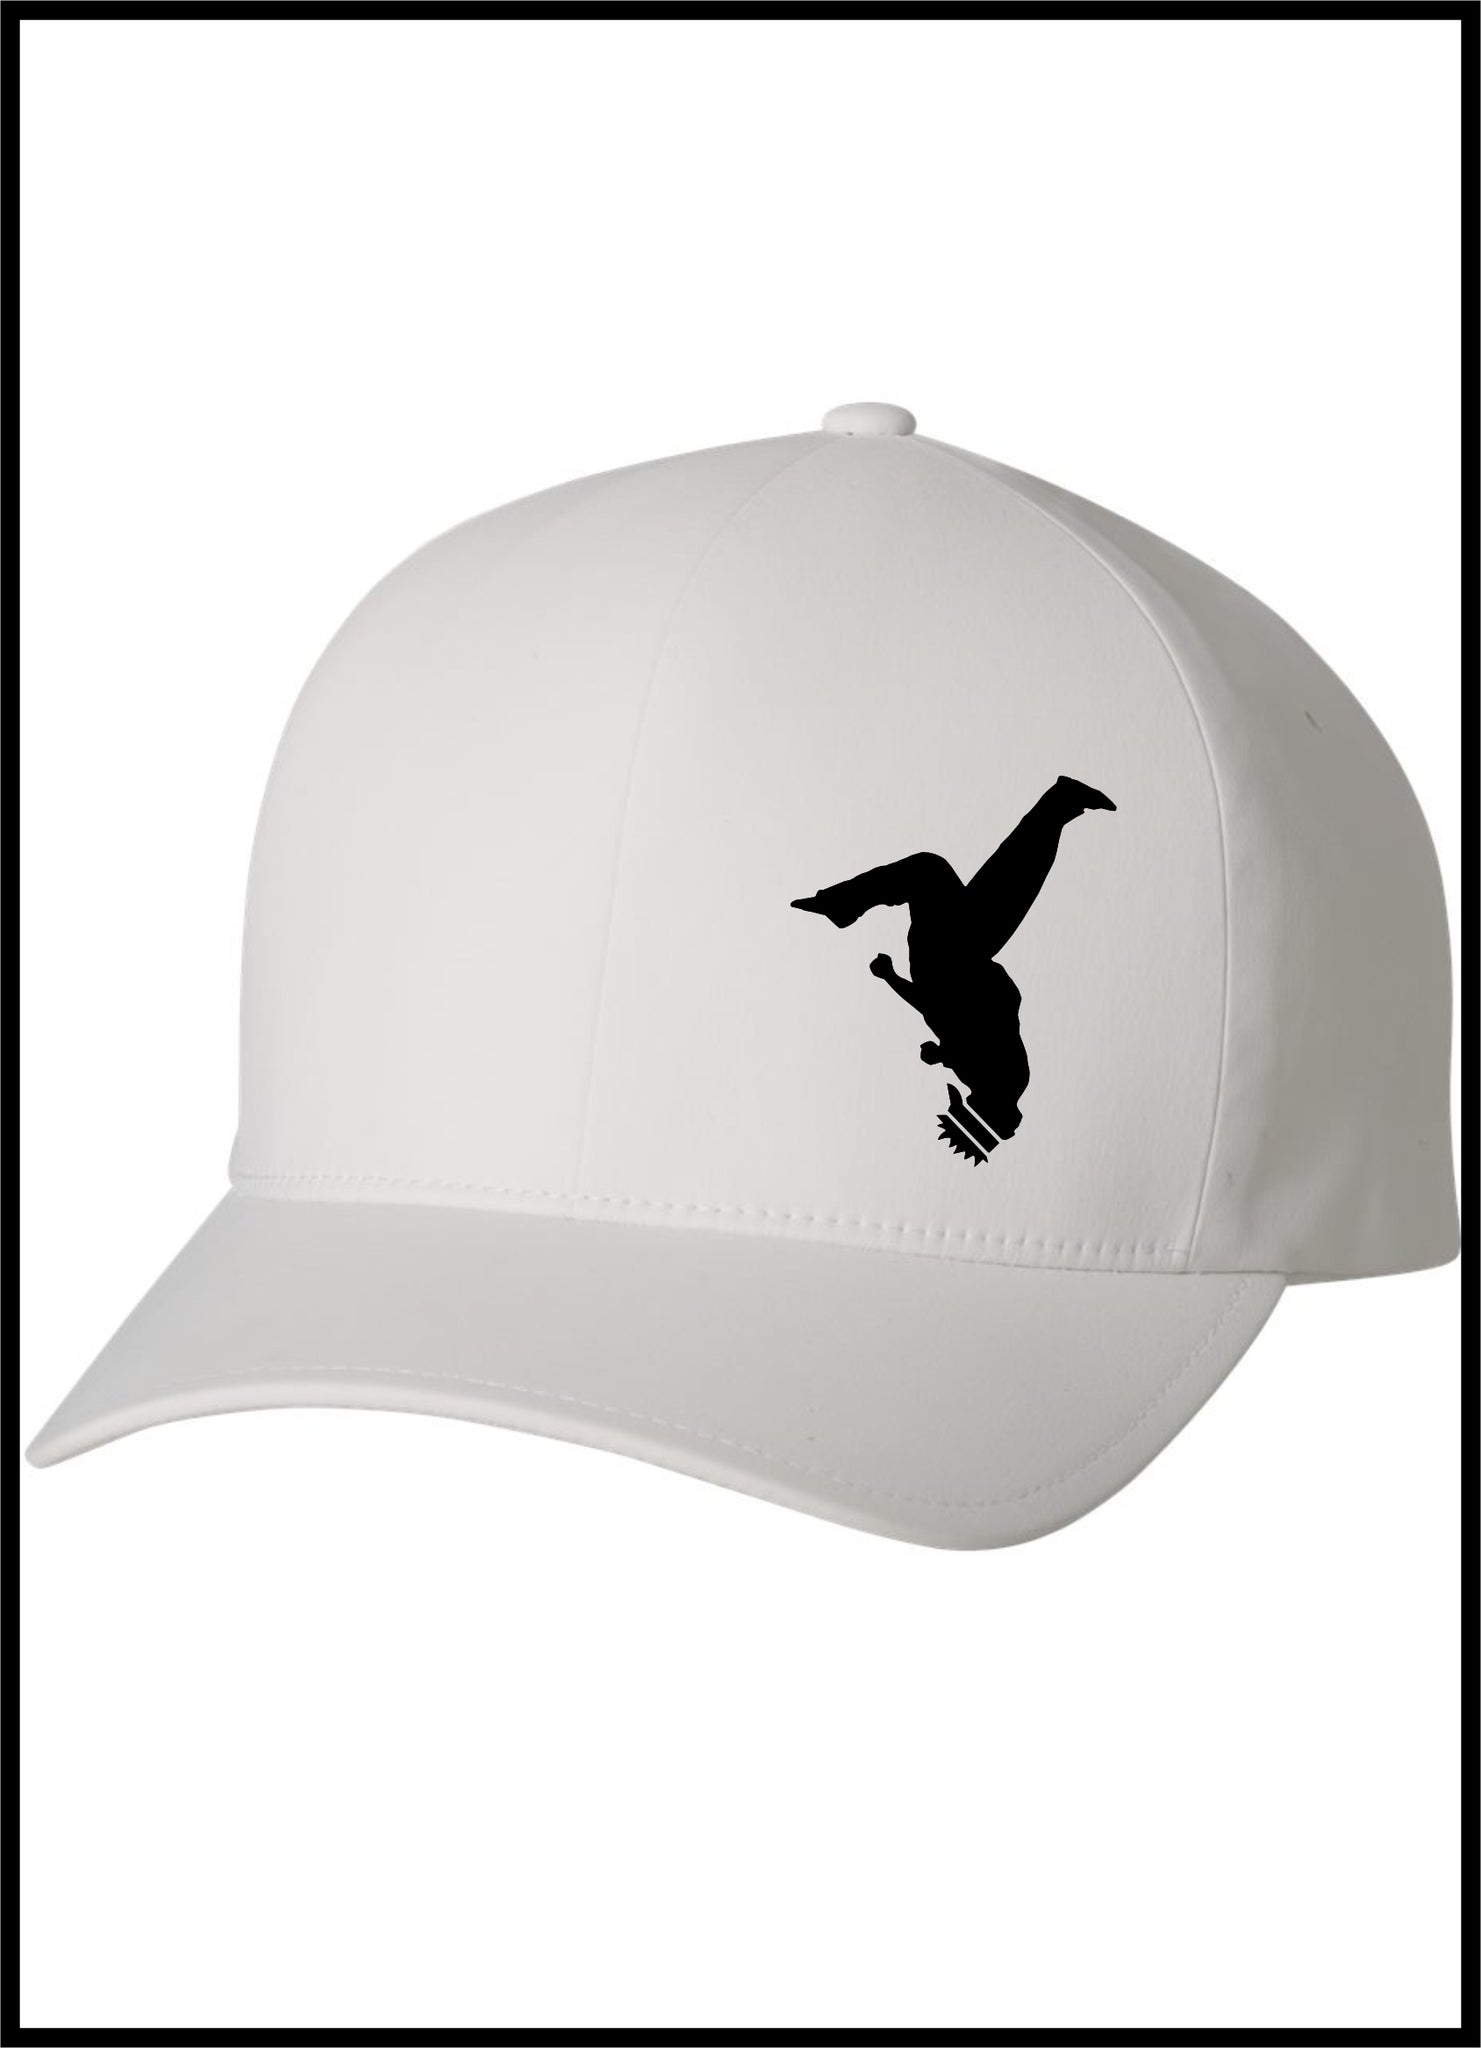 FLIP YOUR LID WEAR WHITE HAT